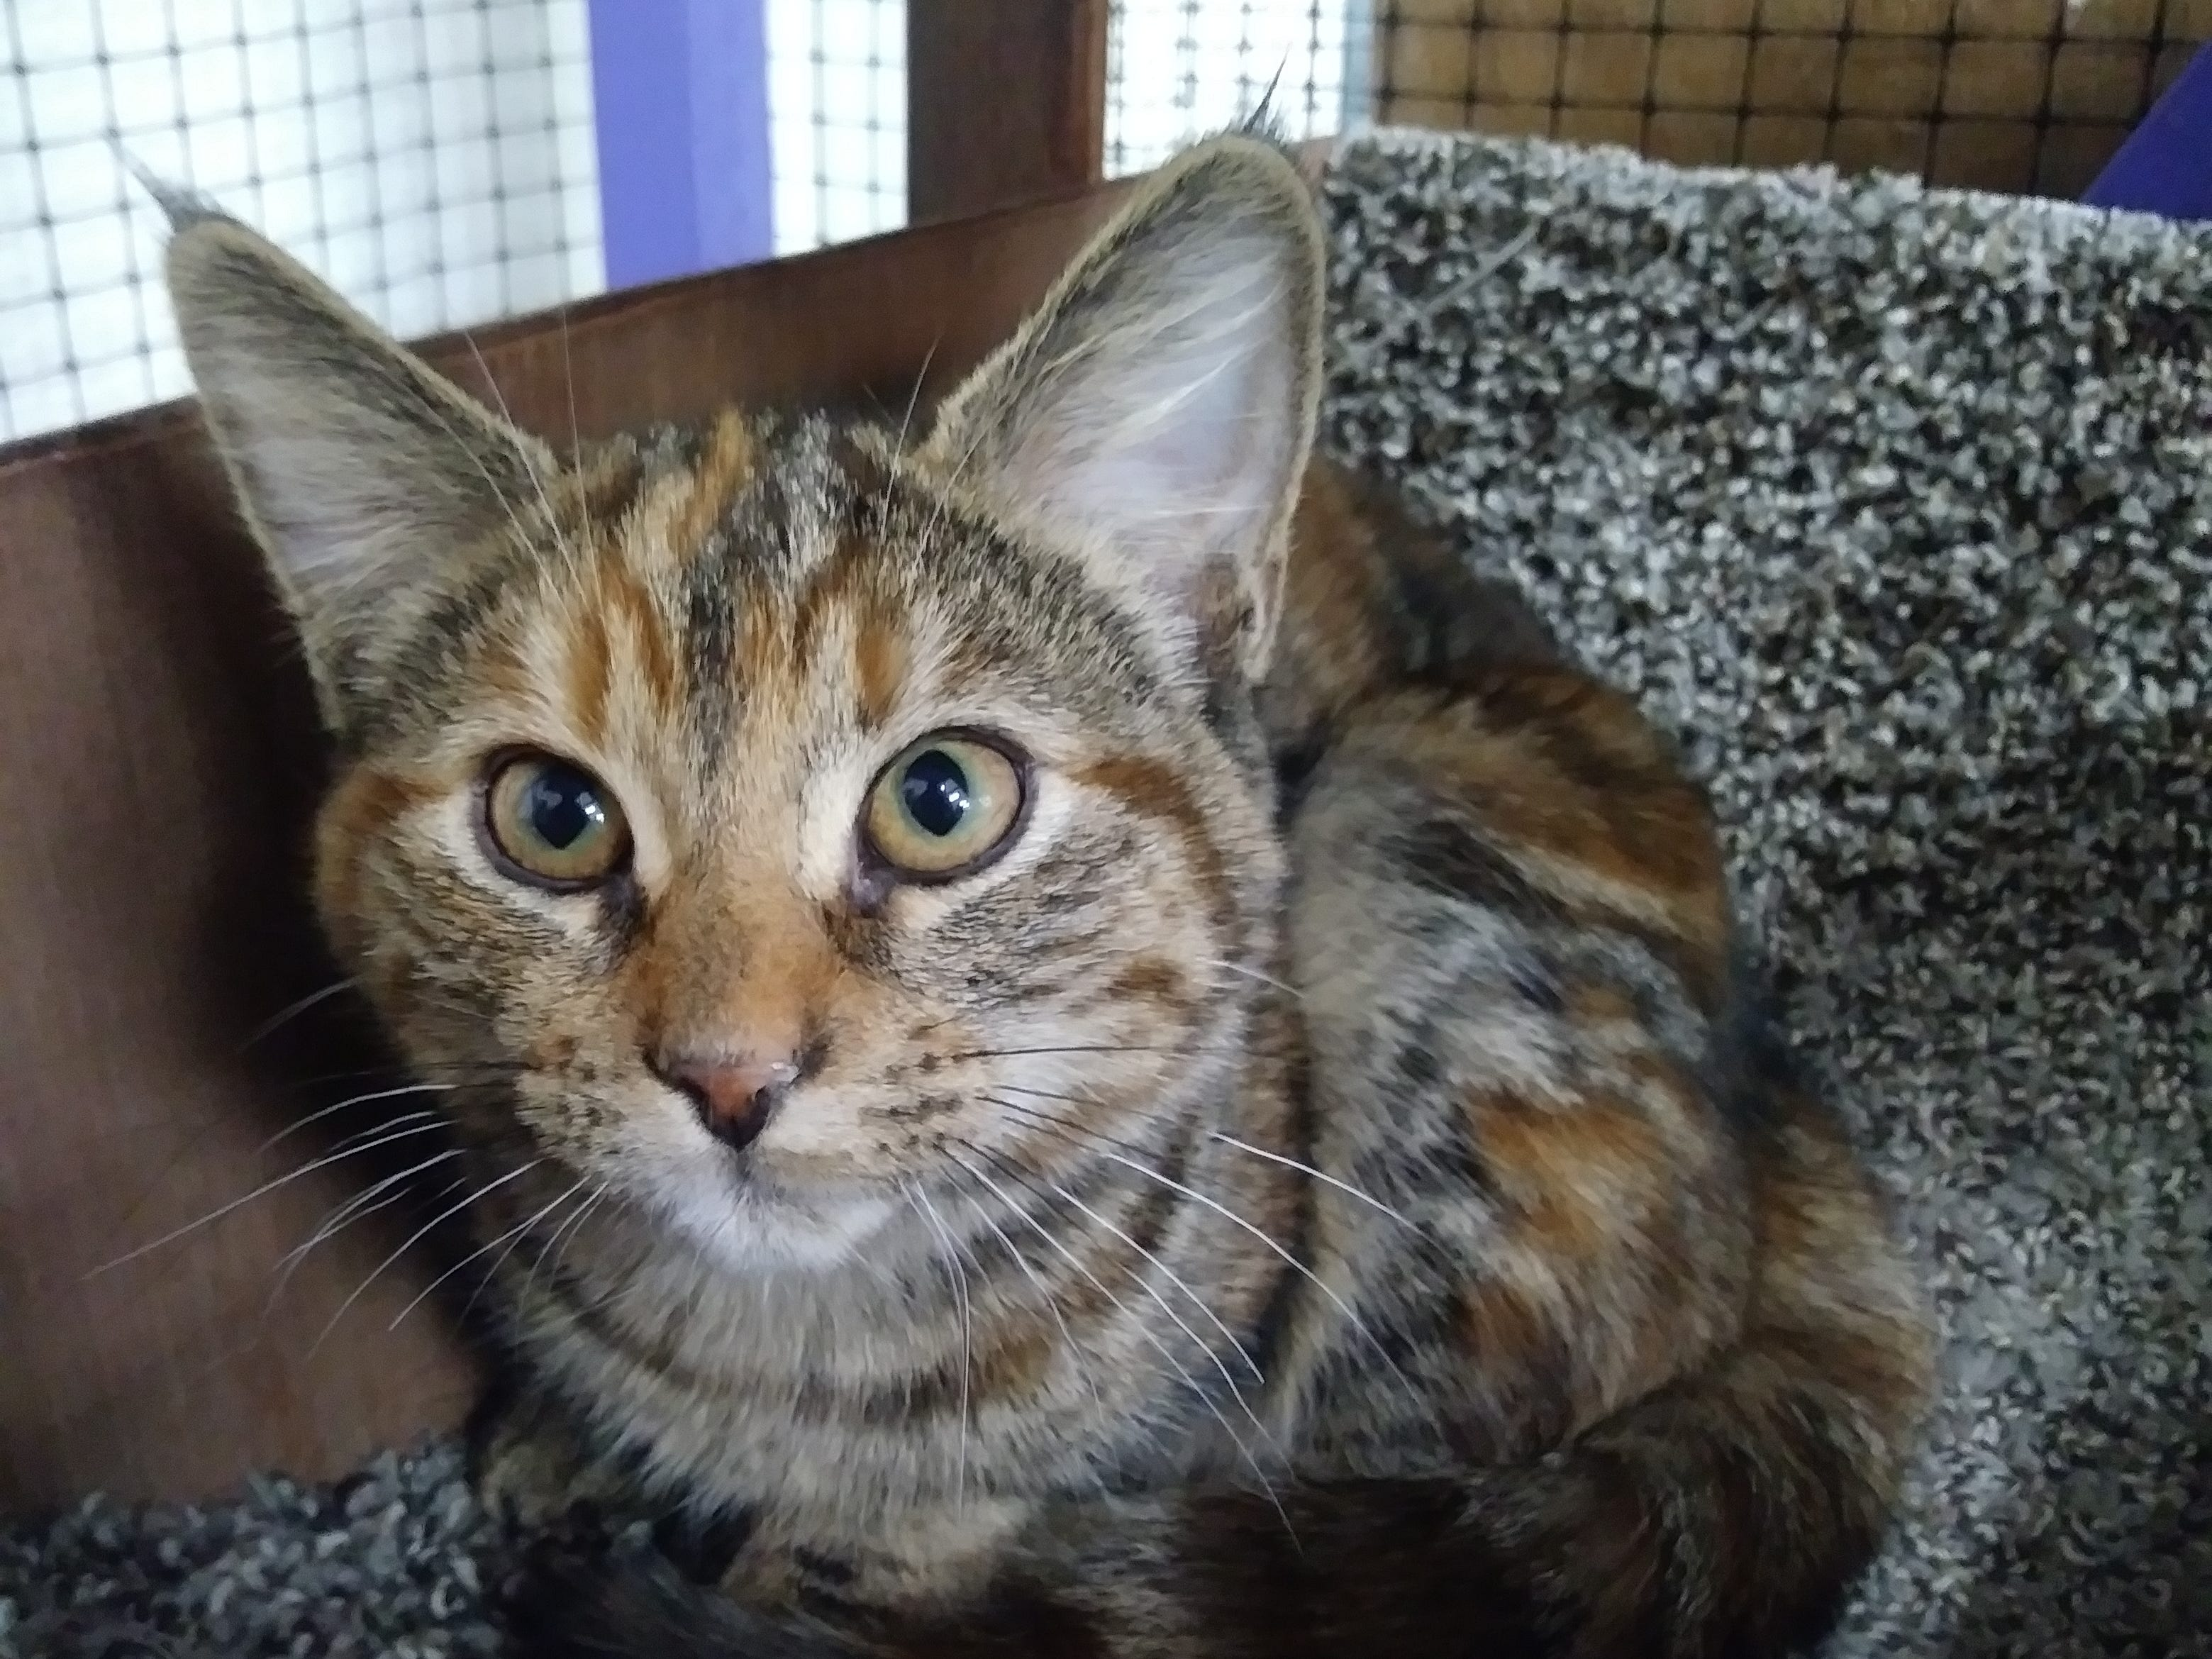 Cecilia is a 6-month-old, female tortoise-shell kitten She's very friendly and loves to talk to her human companions. Email Spay Neuter and Protect at Snap.spayneuterandprotect@gmail.com. Call 209-6966.